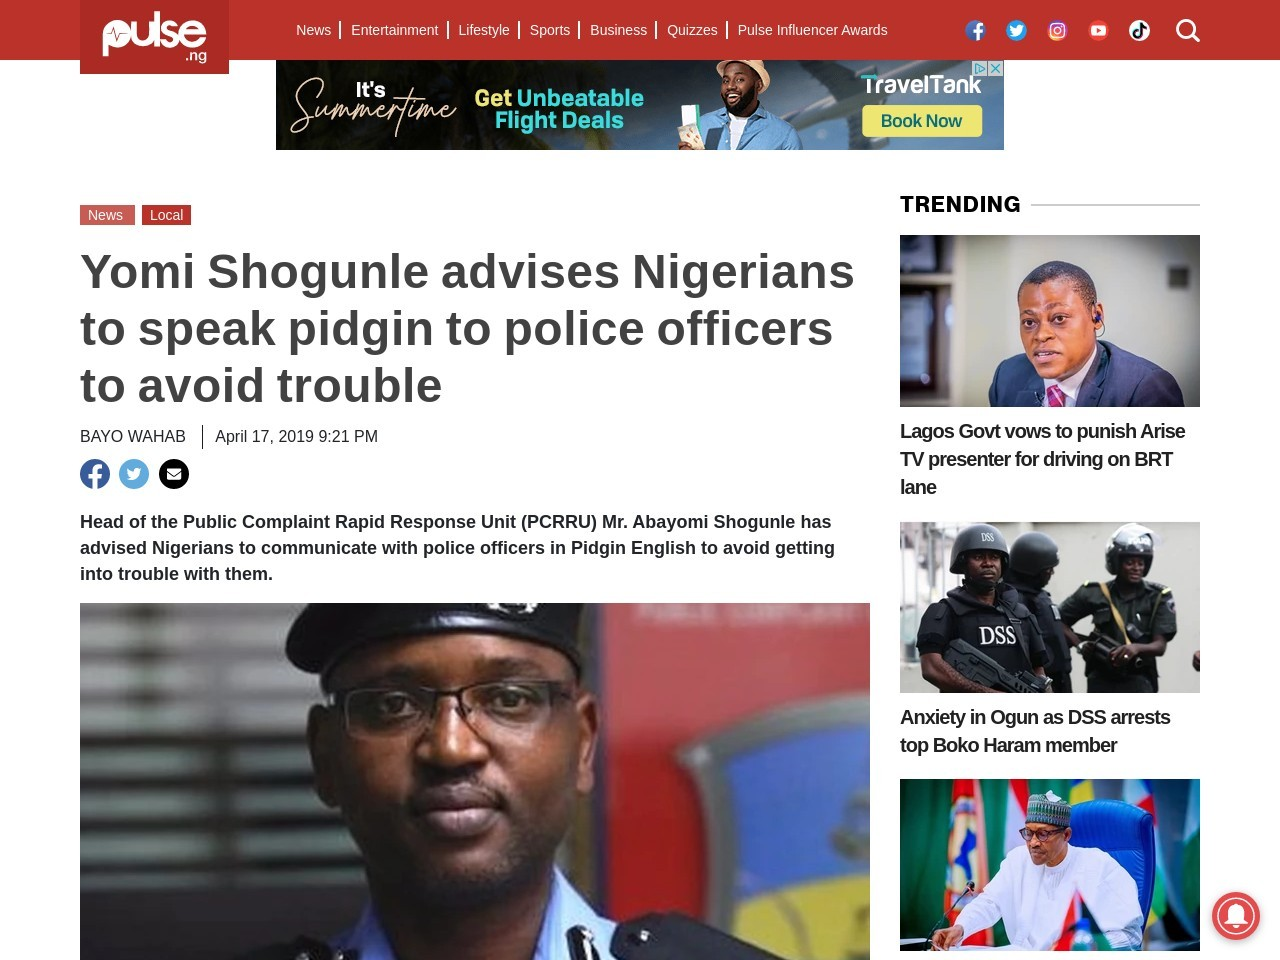 Yomi Shogunle advises Nigerians to speak pidgin to police officers to avoid trouble